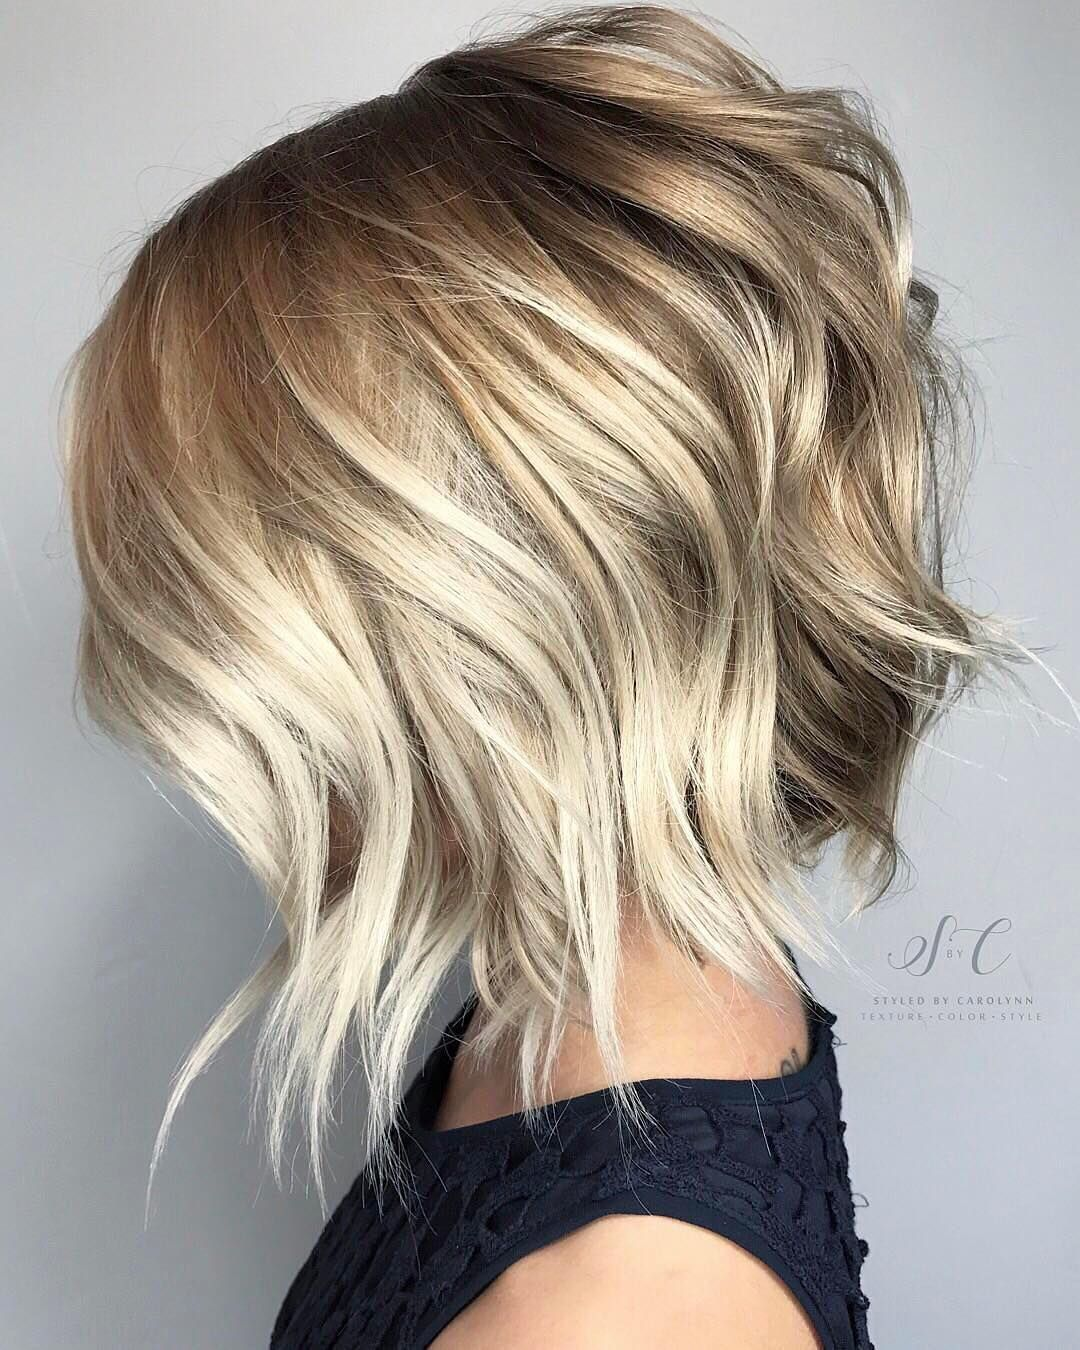 935 Likes 6 Comments Cities Best Hair Artists Citiesbesthairartists On Instagram Short And Sassy B Hair Styles Choppy Bob Hairstyles Bob Hairstyles